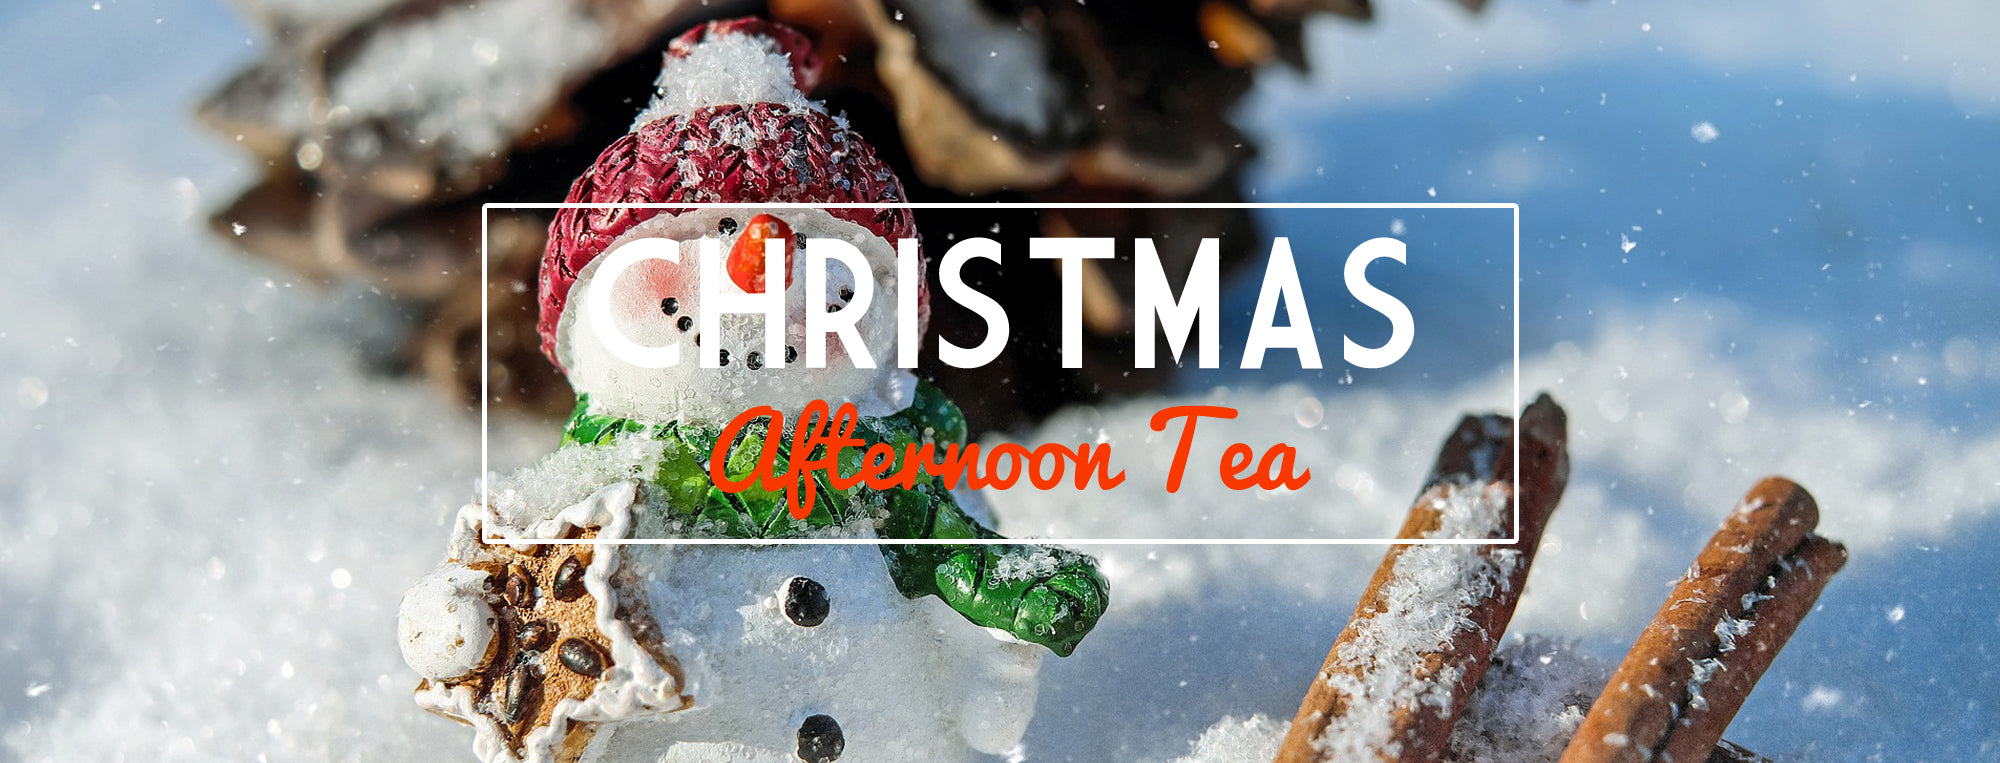 Christmas Festive Afternoon Tea at The Ridgeway Bar and Kitchen in Newport